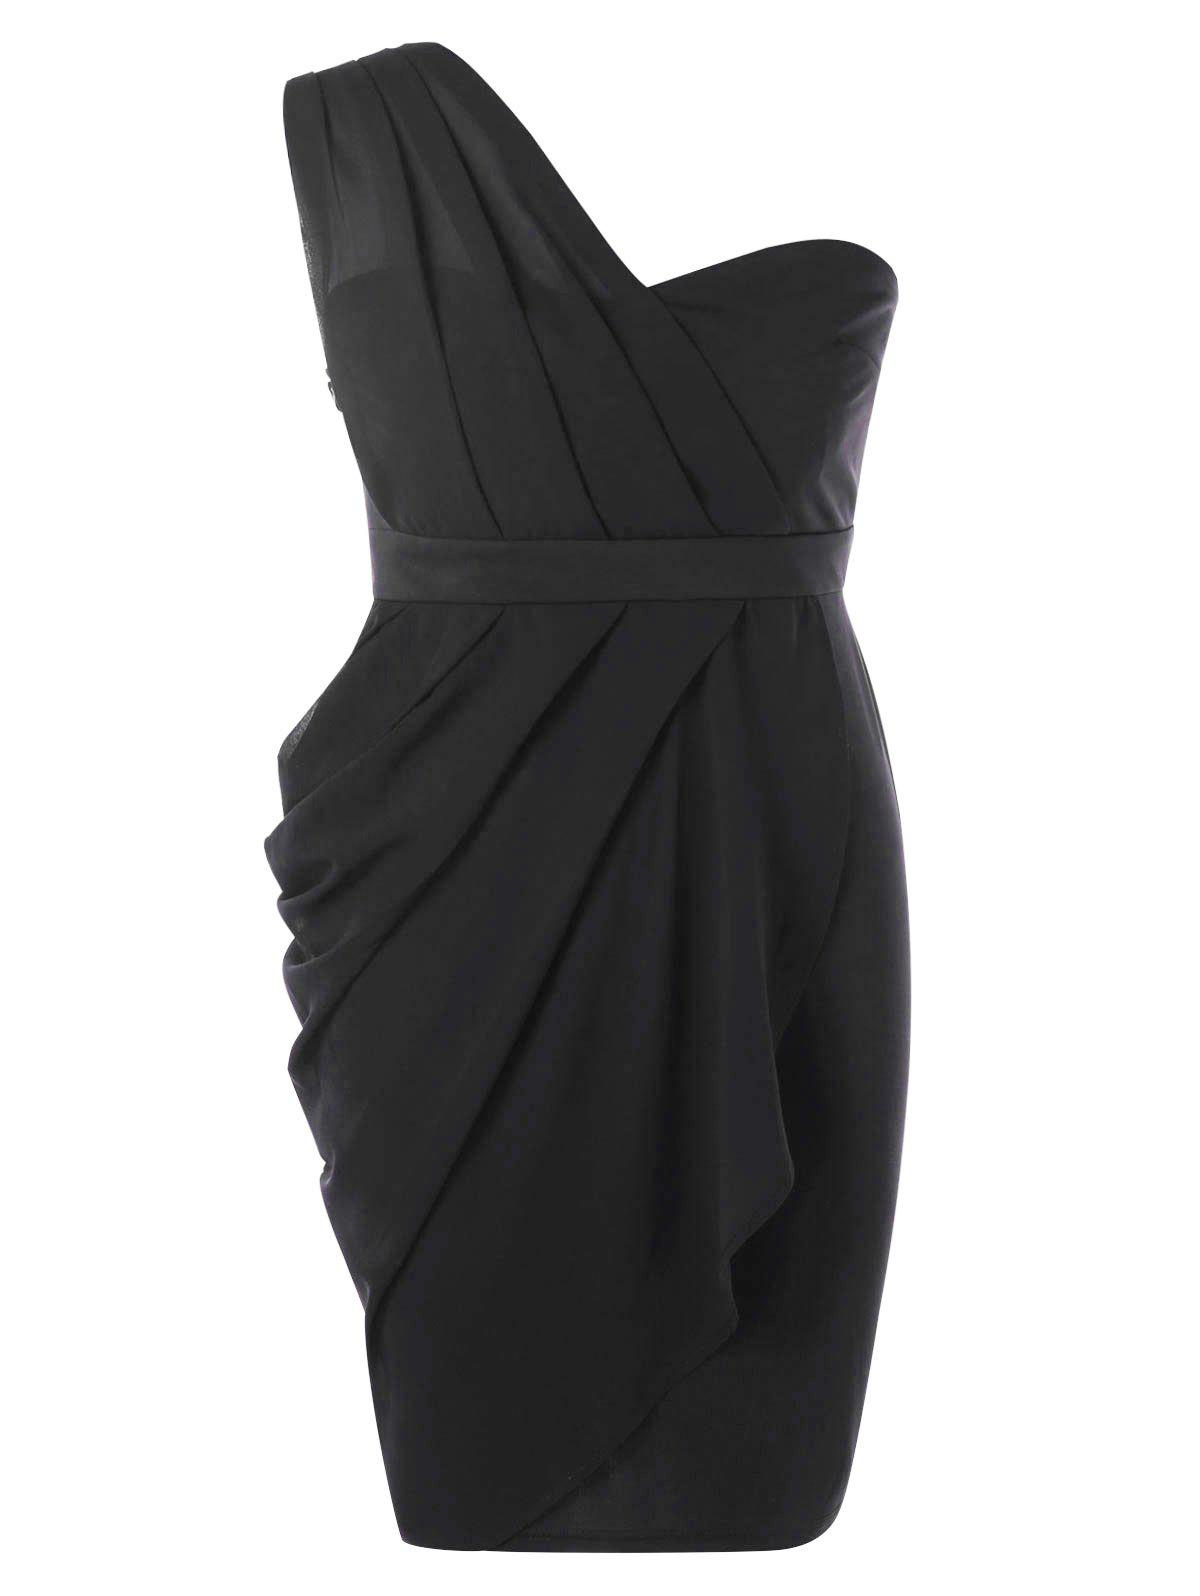 2018 Plus Size Ruched Semi Formal Dress Black Xl In Bodycon Dresses